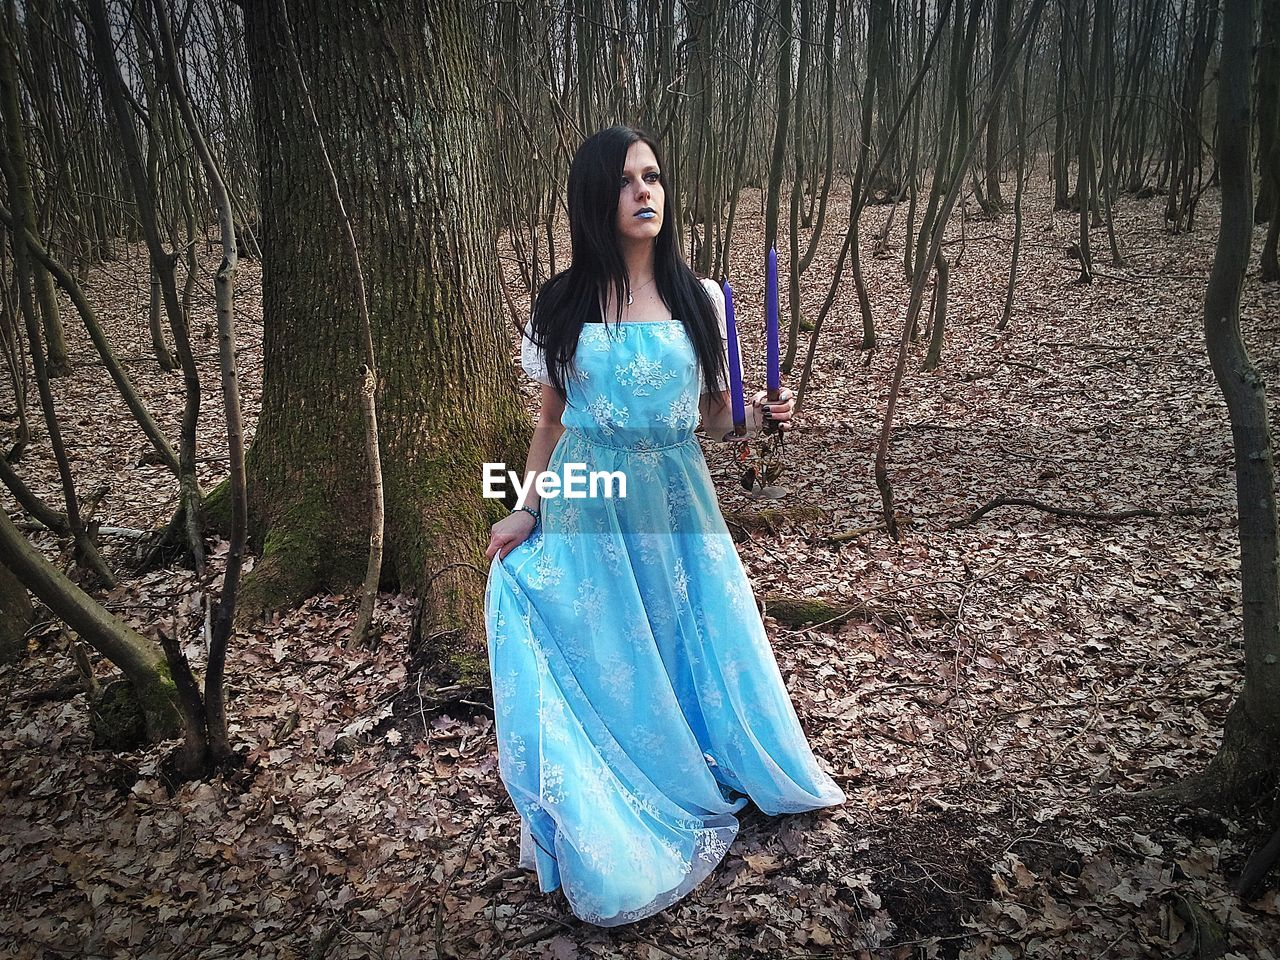 Woman wearing dress and holding candles while standing amidst trees at forest